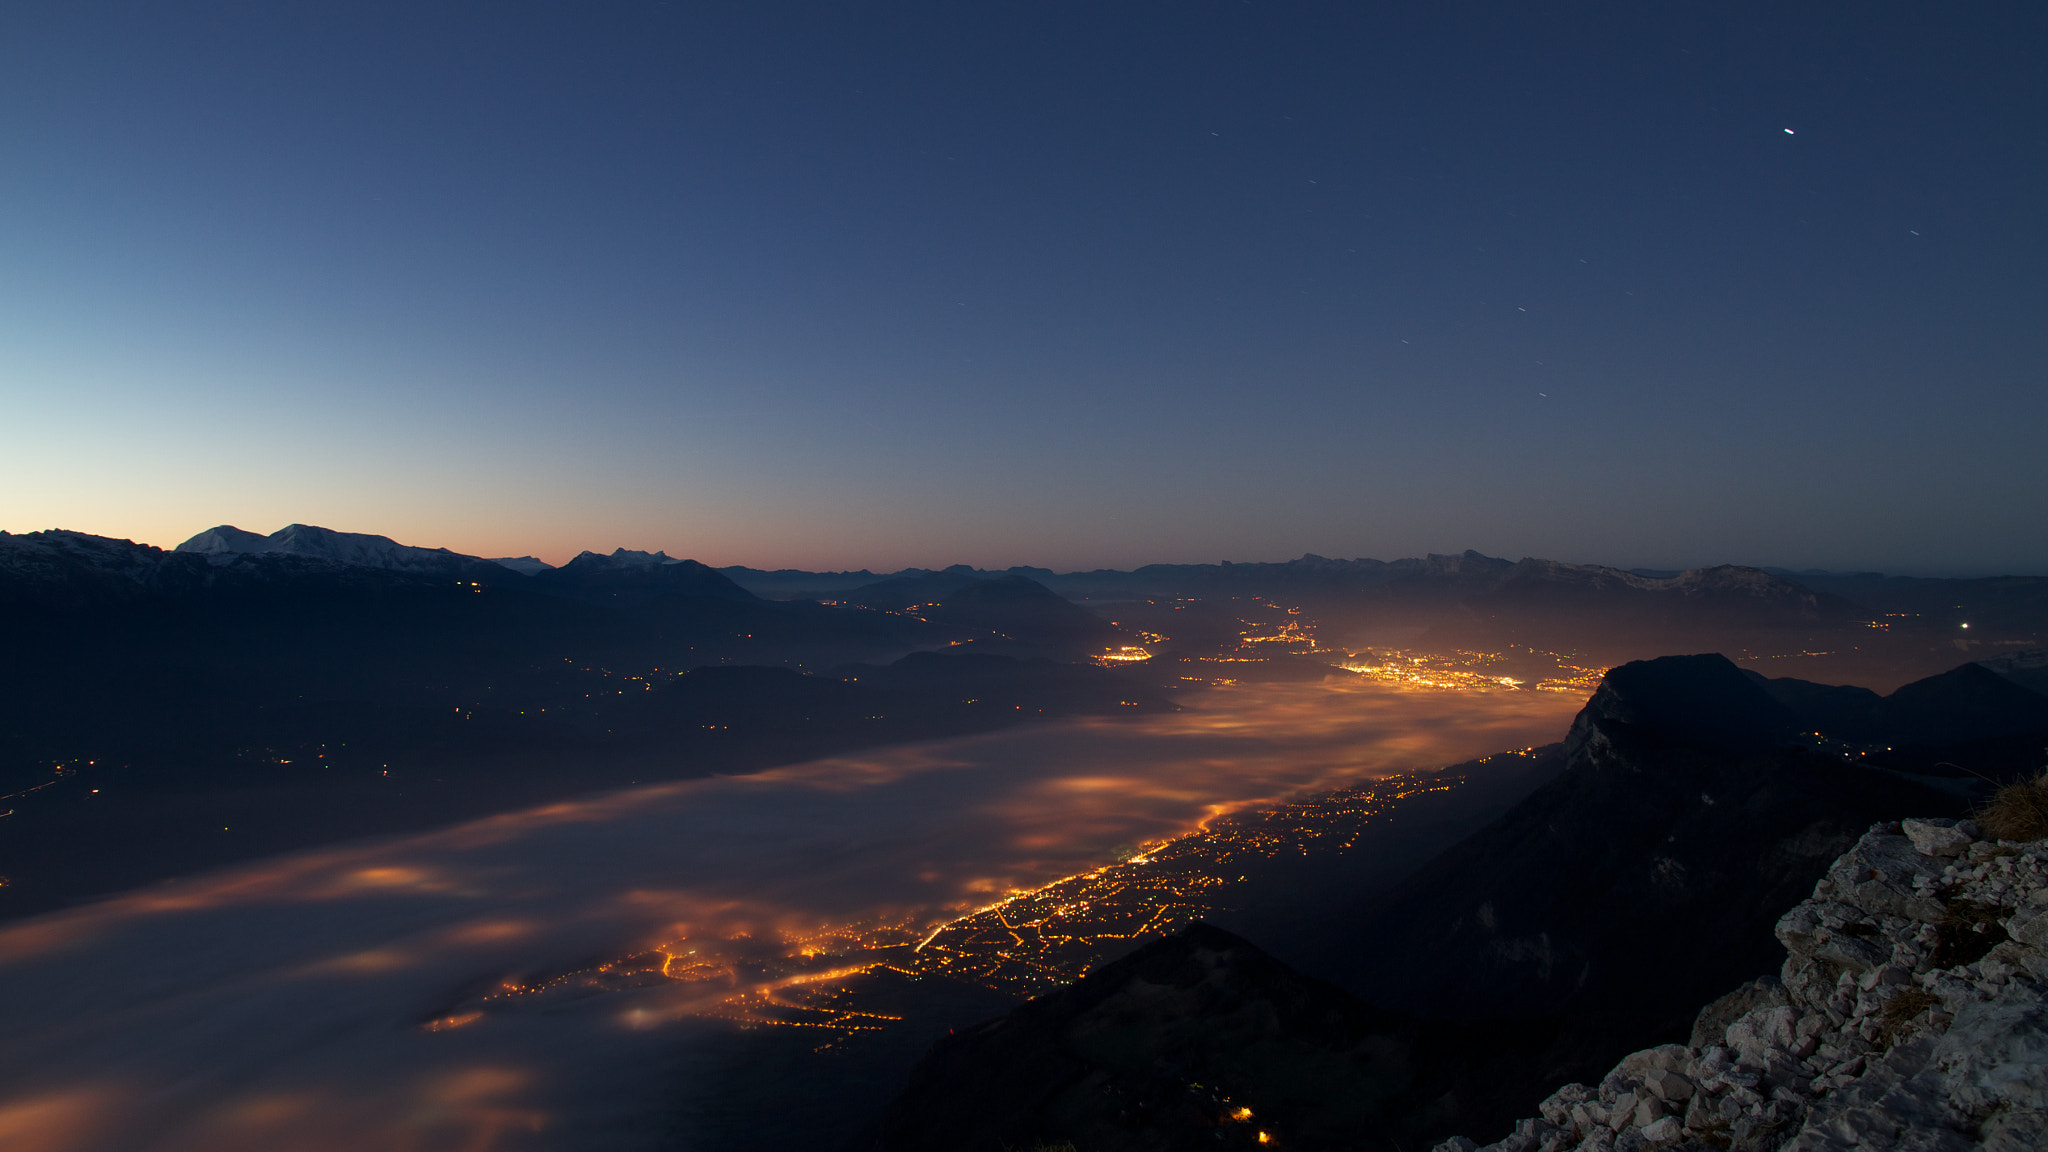 Photograph Grenoble in a sleeping bag by Julien Jasseny on 500px